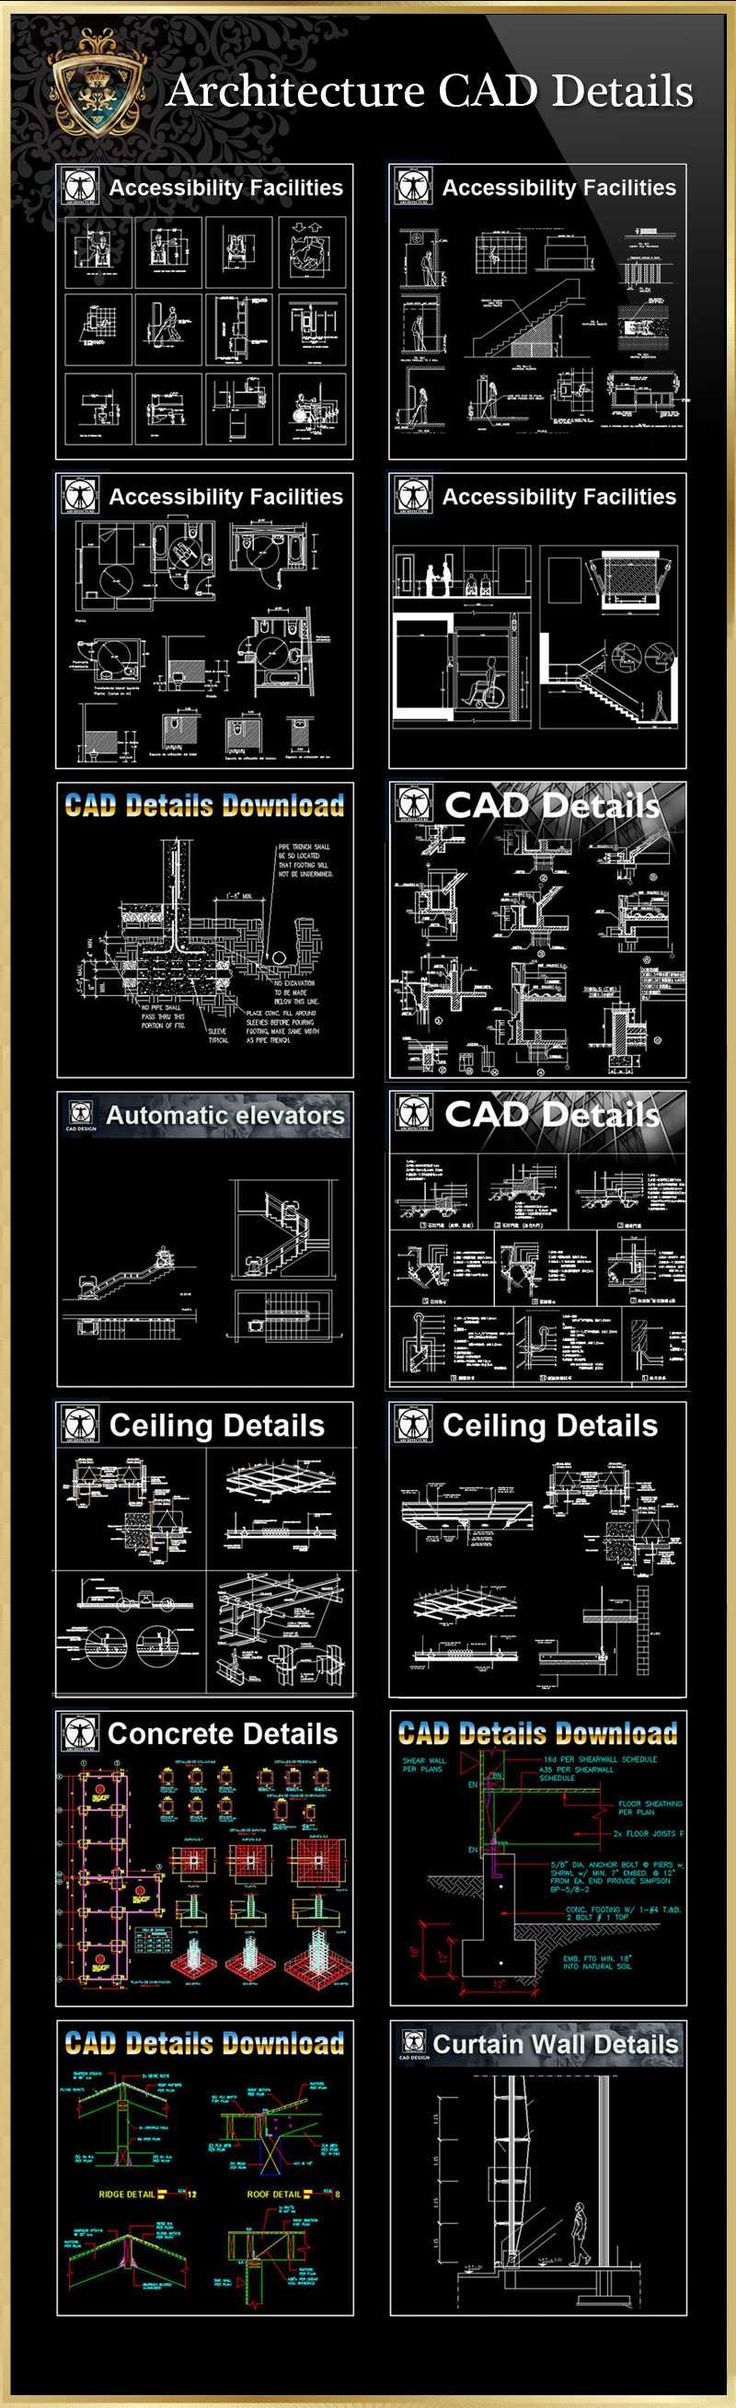 【All in one Architecture CAD Details】-High quality DWG FILES library for